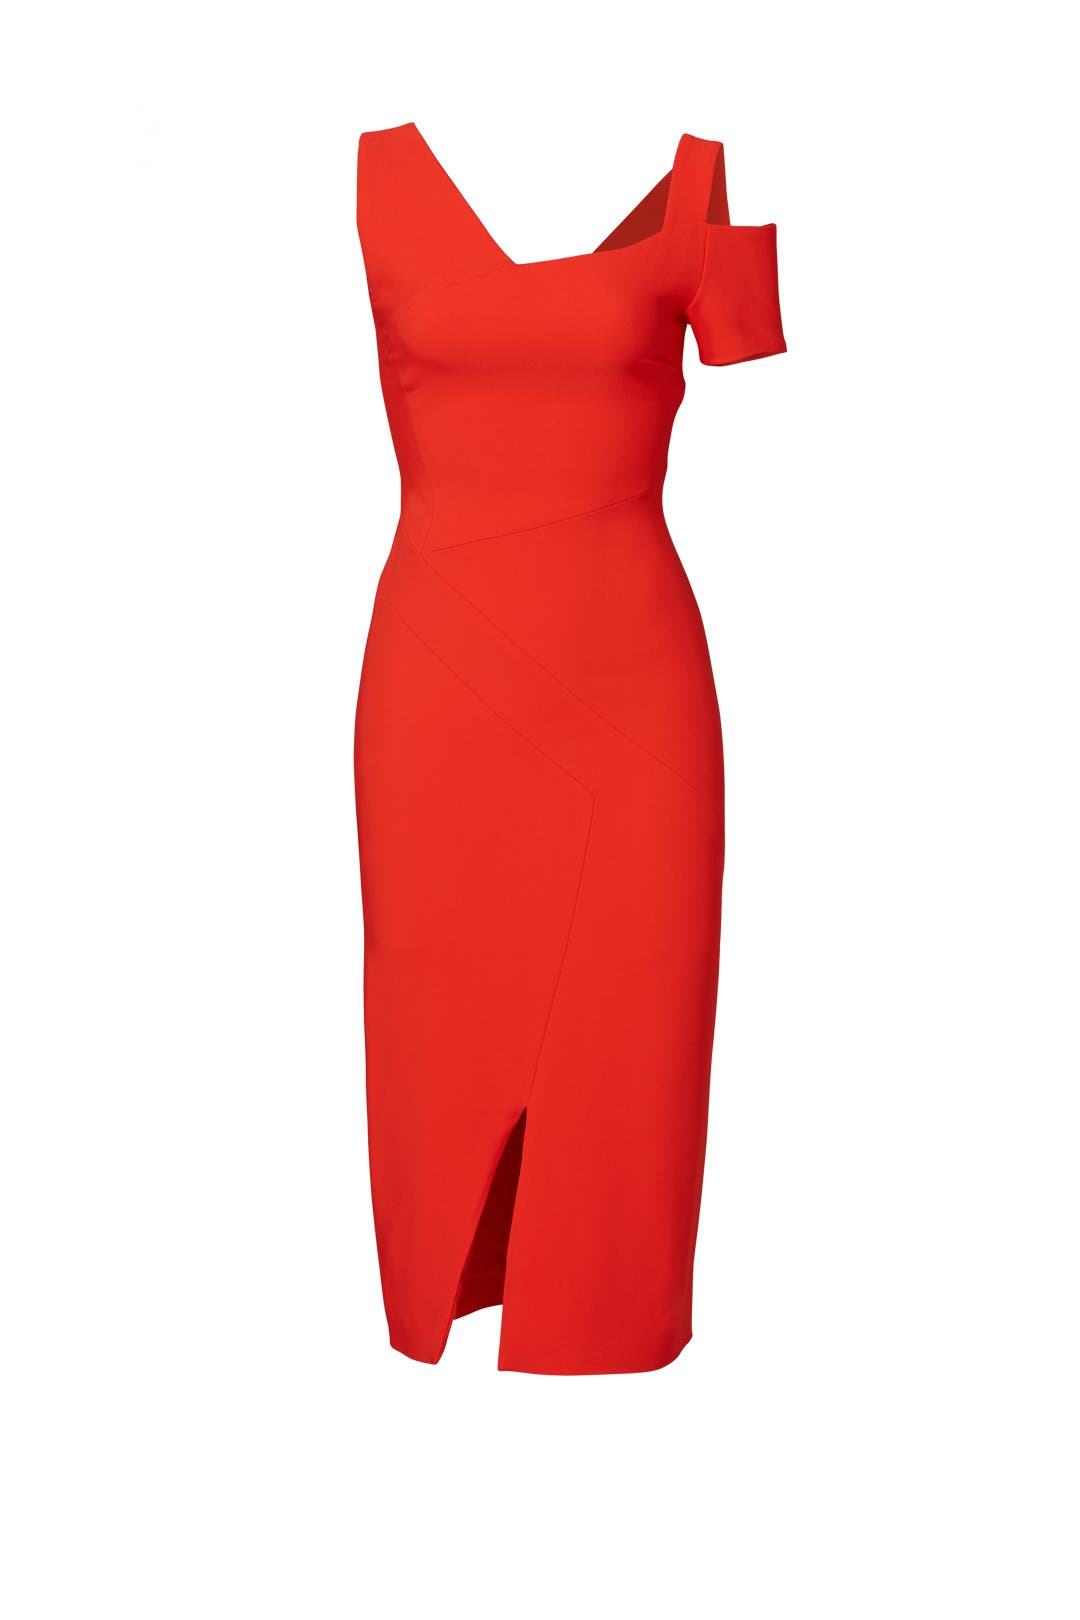 Red Asymmetric Dress by Antonio Berardi for $280 | Rent the Runway